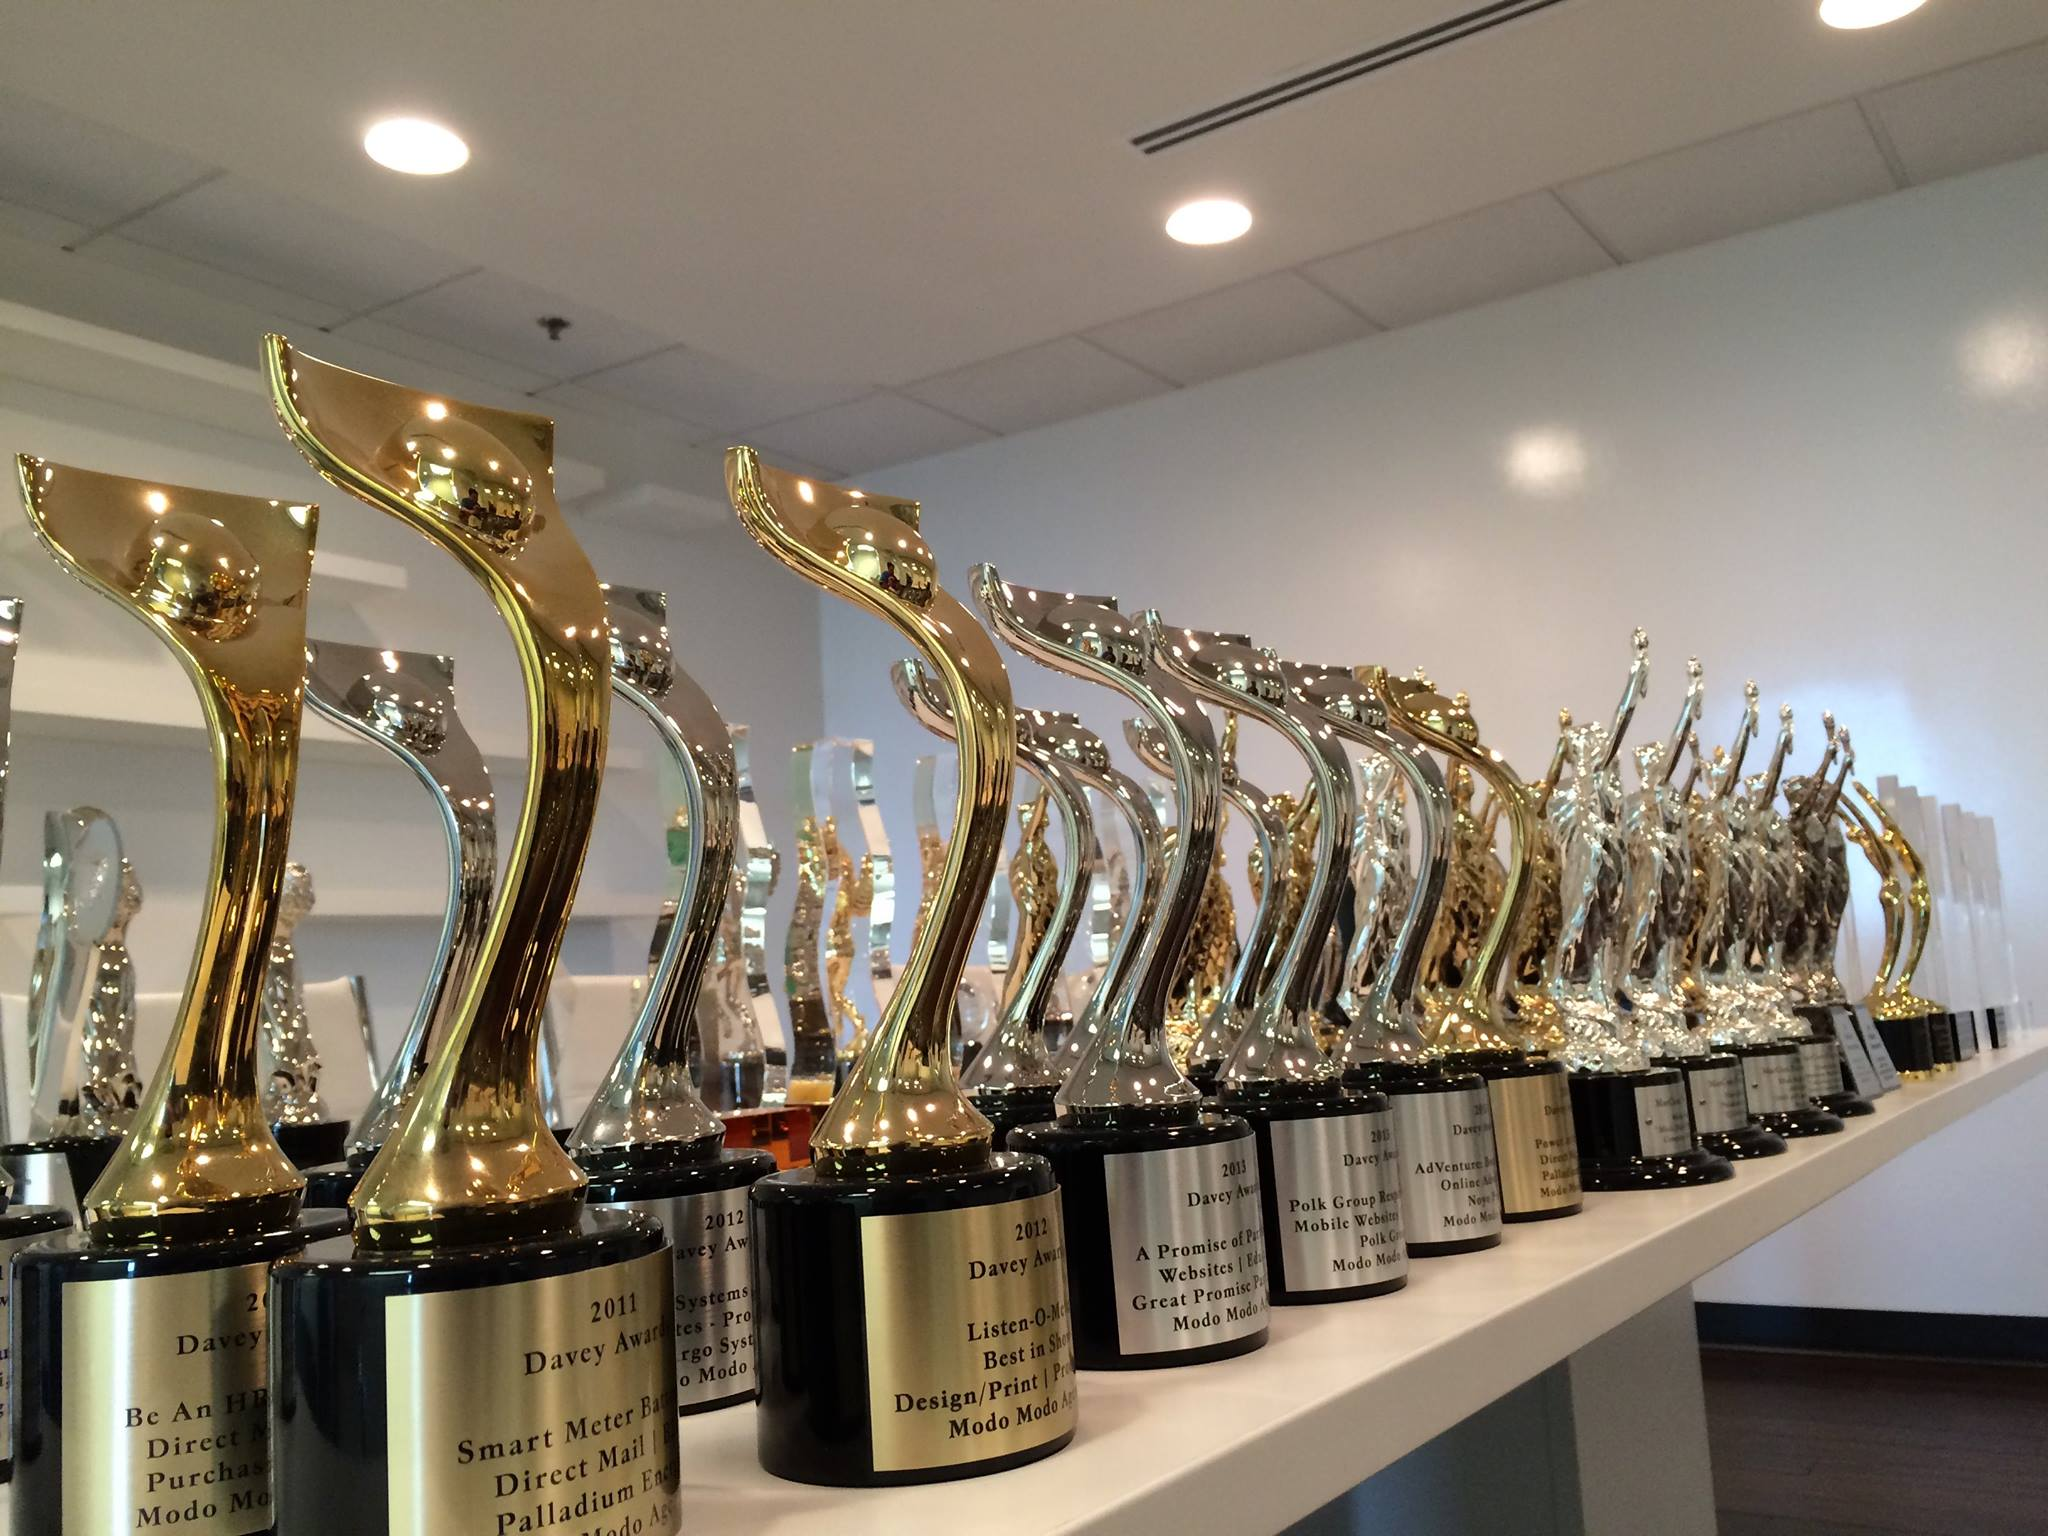 Modo Modo Agency, AgencySparks' creative marketing agency, regularly leverages awards as a means to establish credibility with potential clients.